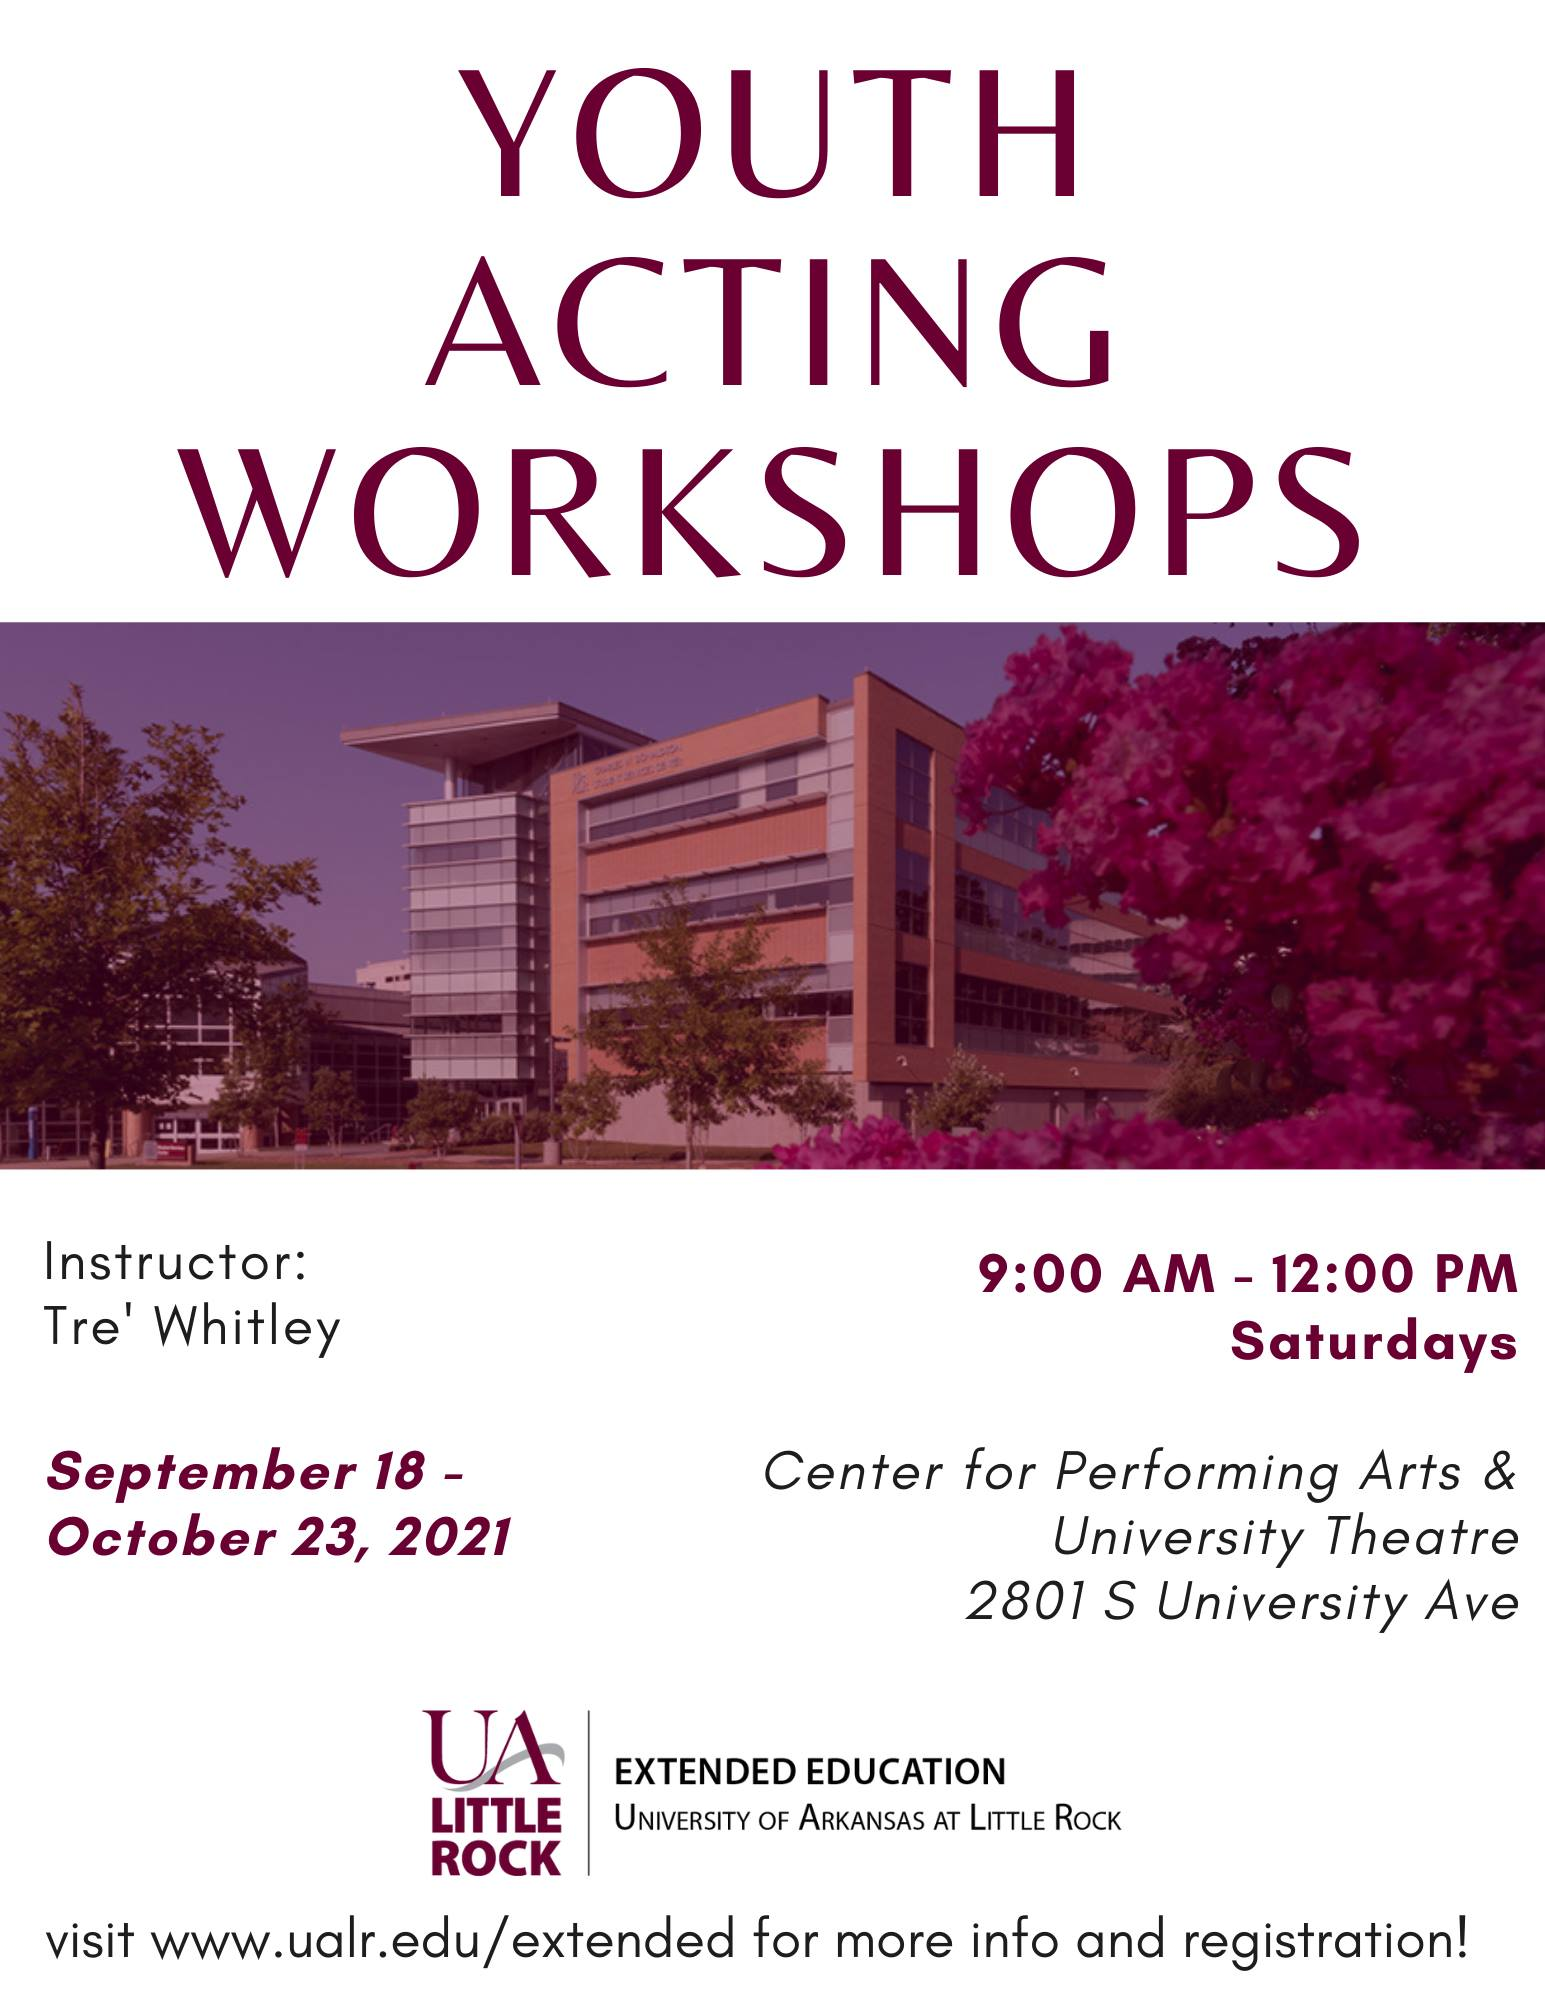 The University of Arkansas at Little Rock will host a six-week Youth Acting Workshop this fall.